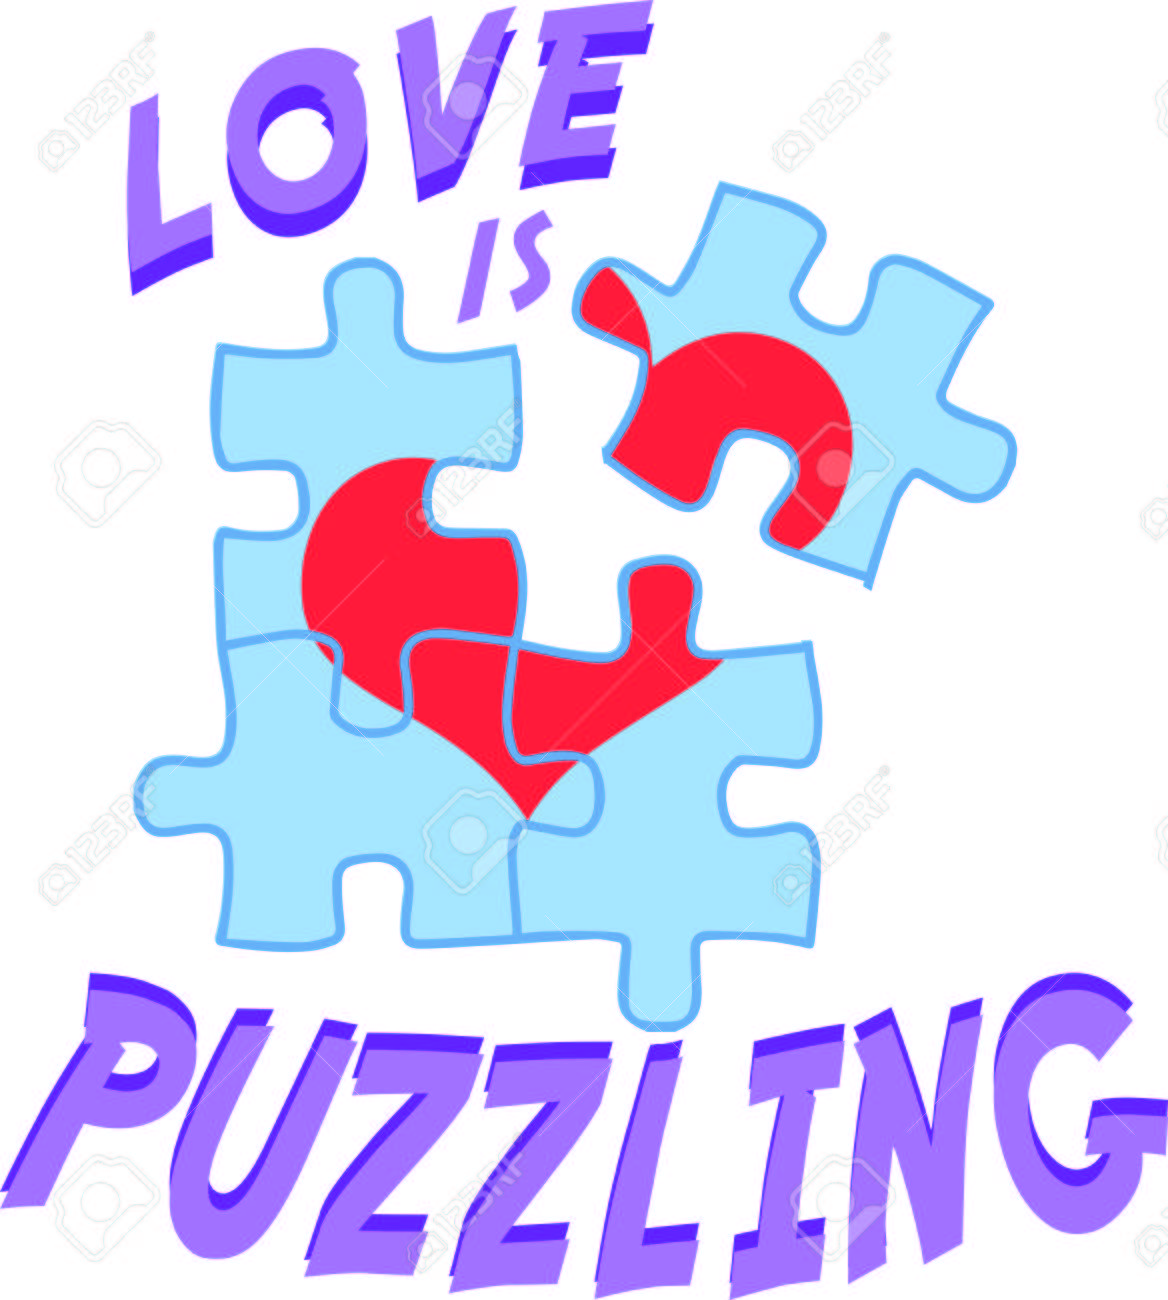 Teppich Puzzle Design Stock Photo